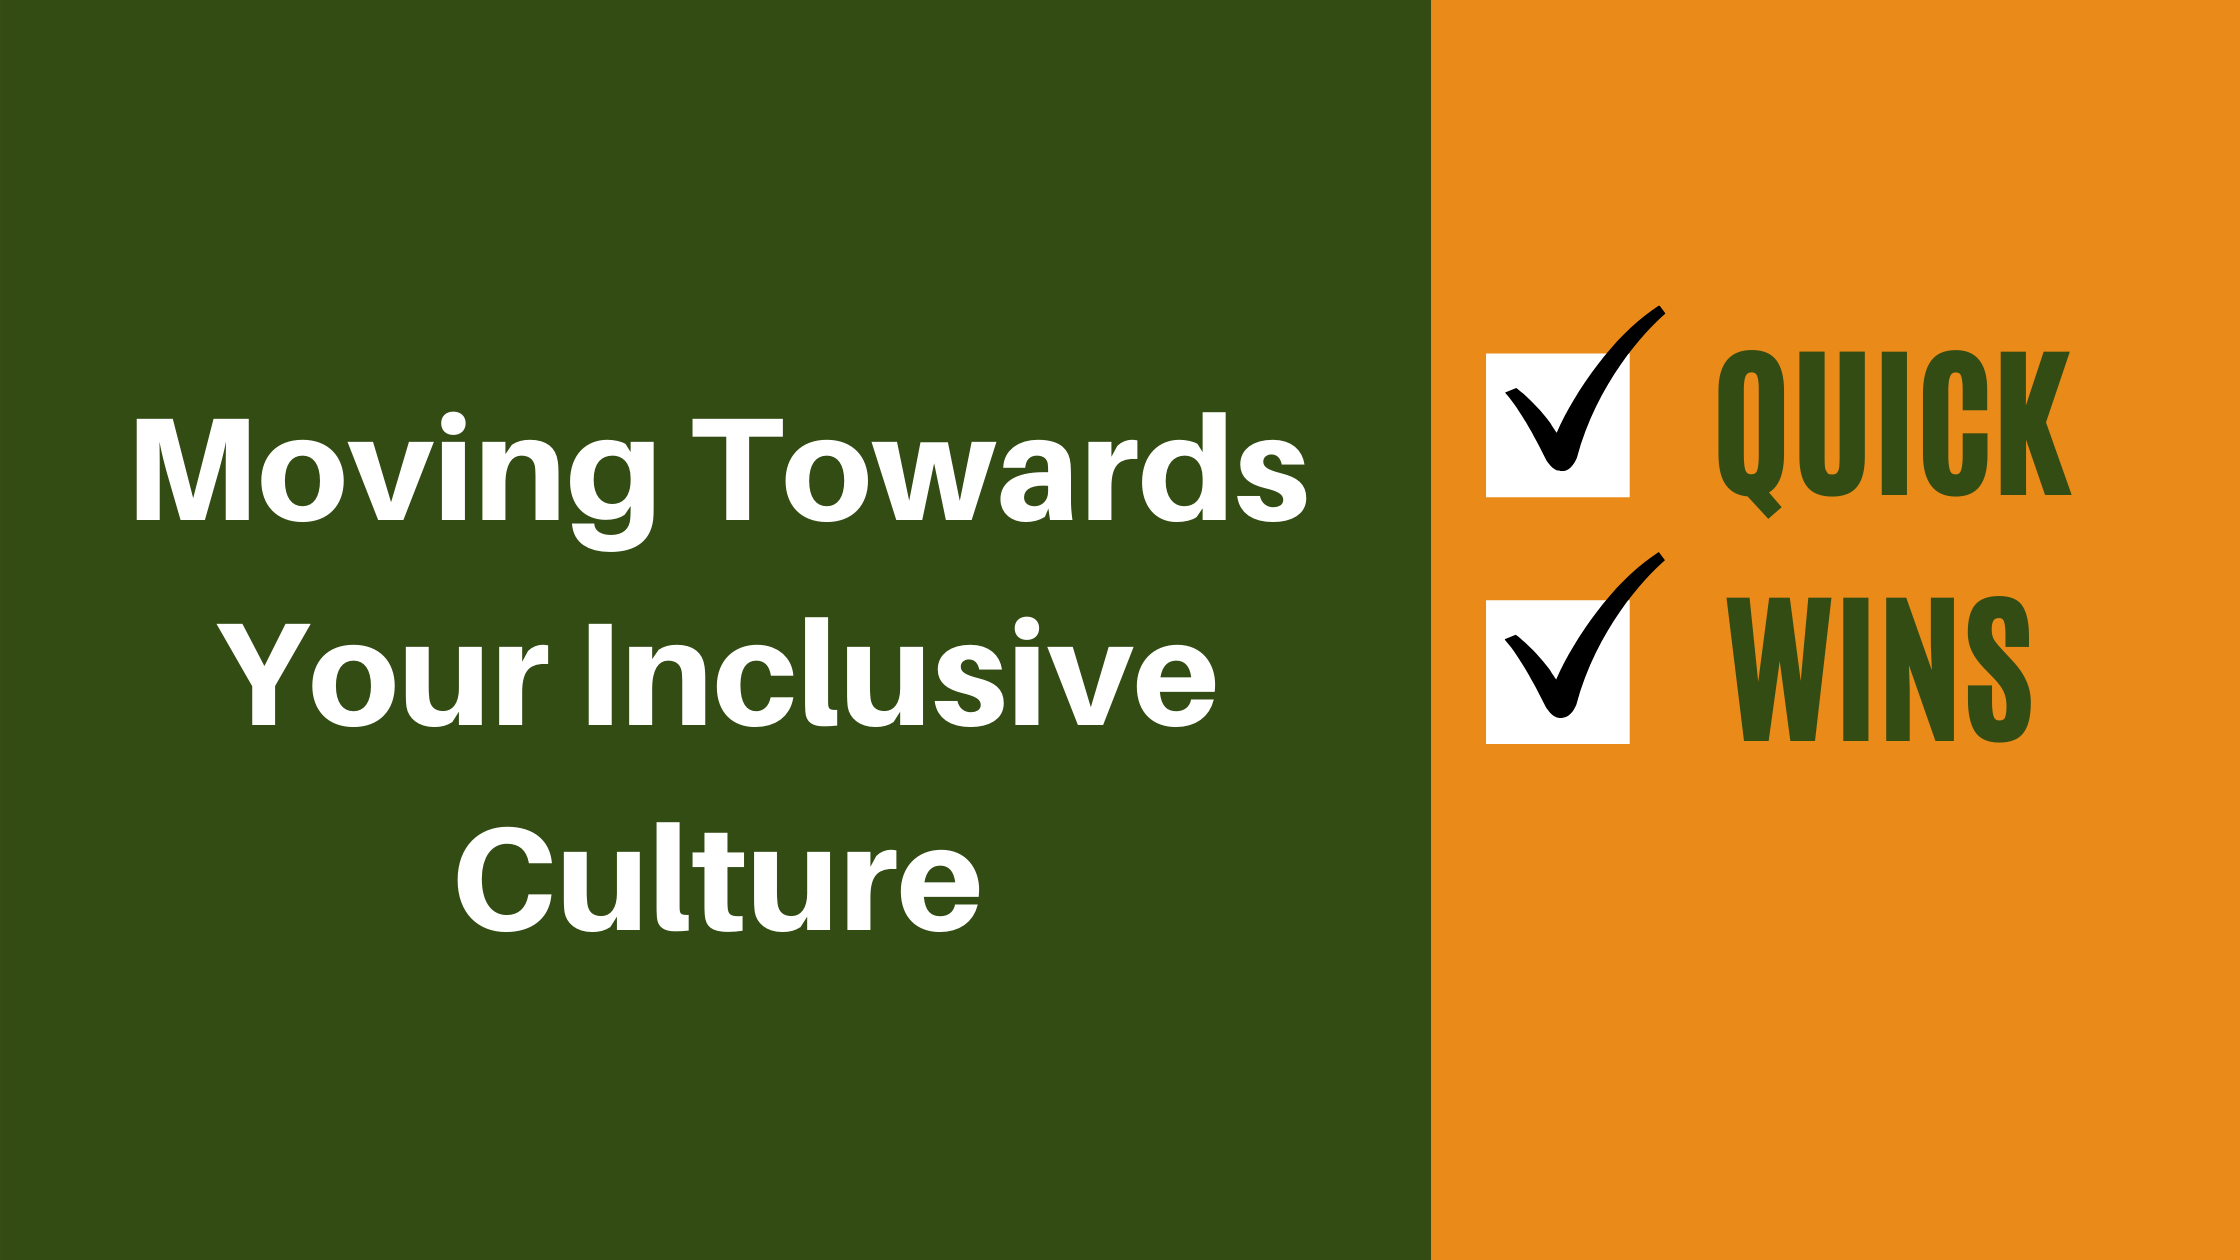 QUICK WINS_ Moving Towards Your Inclusive Culture